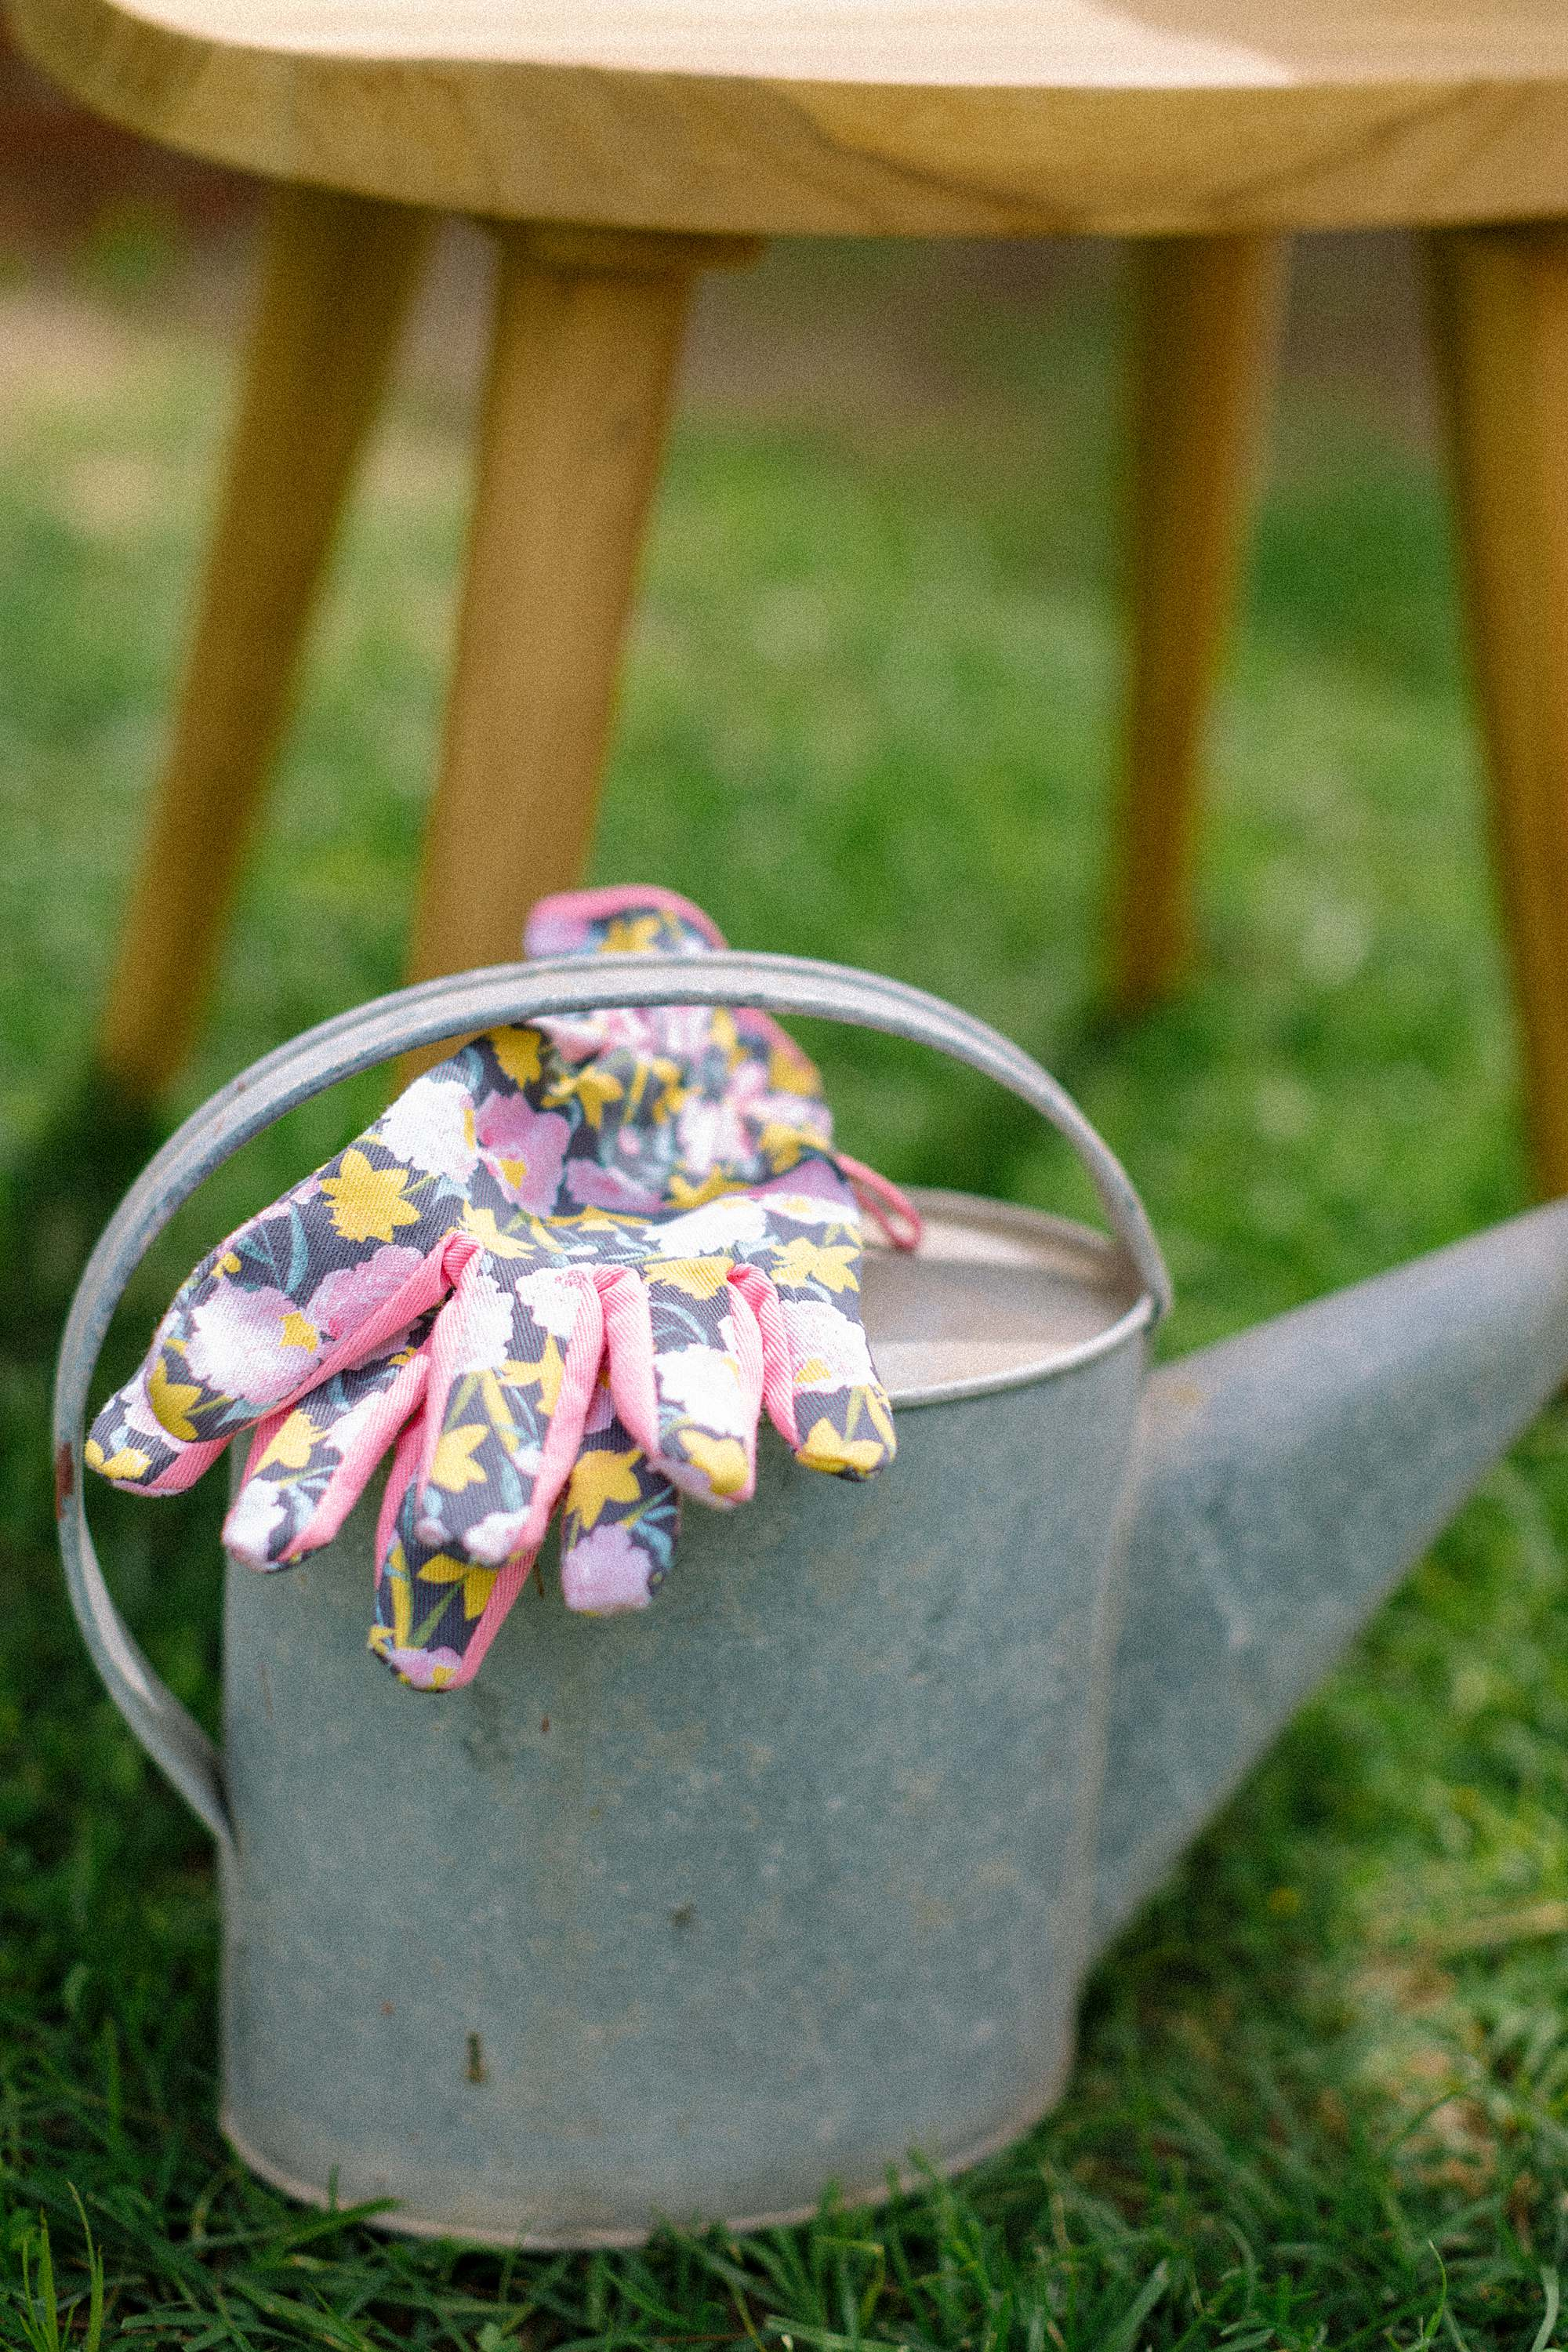 floral garden gloves on antique watering can gardening shot photography